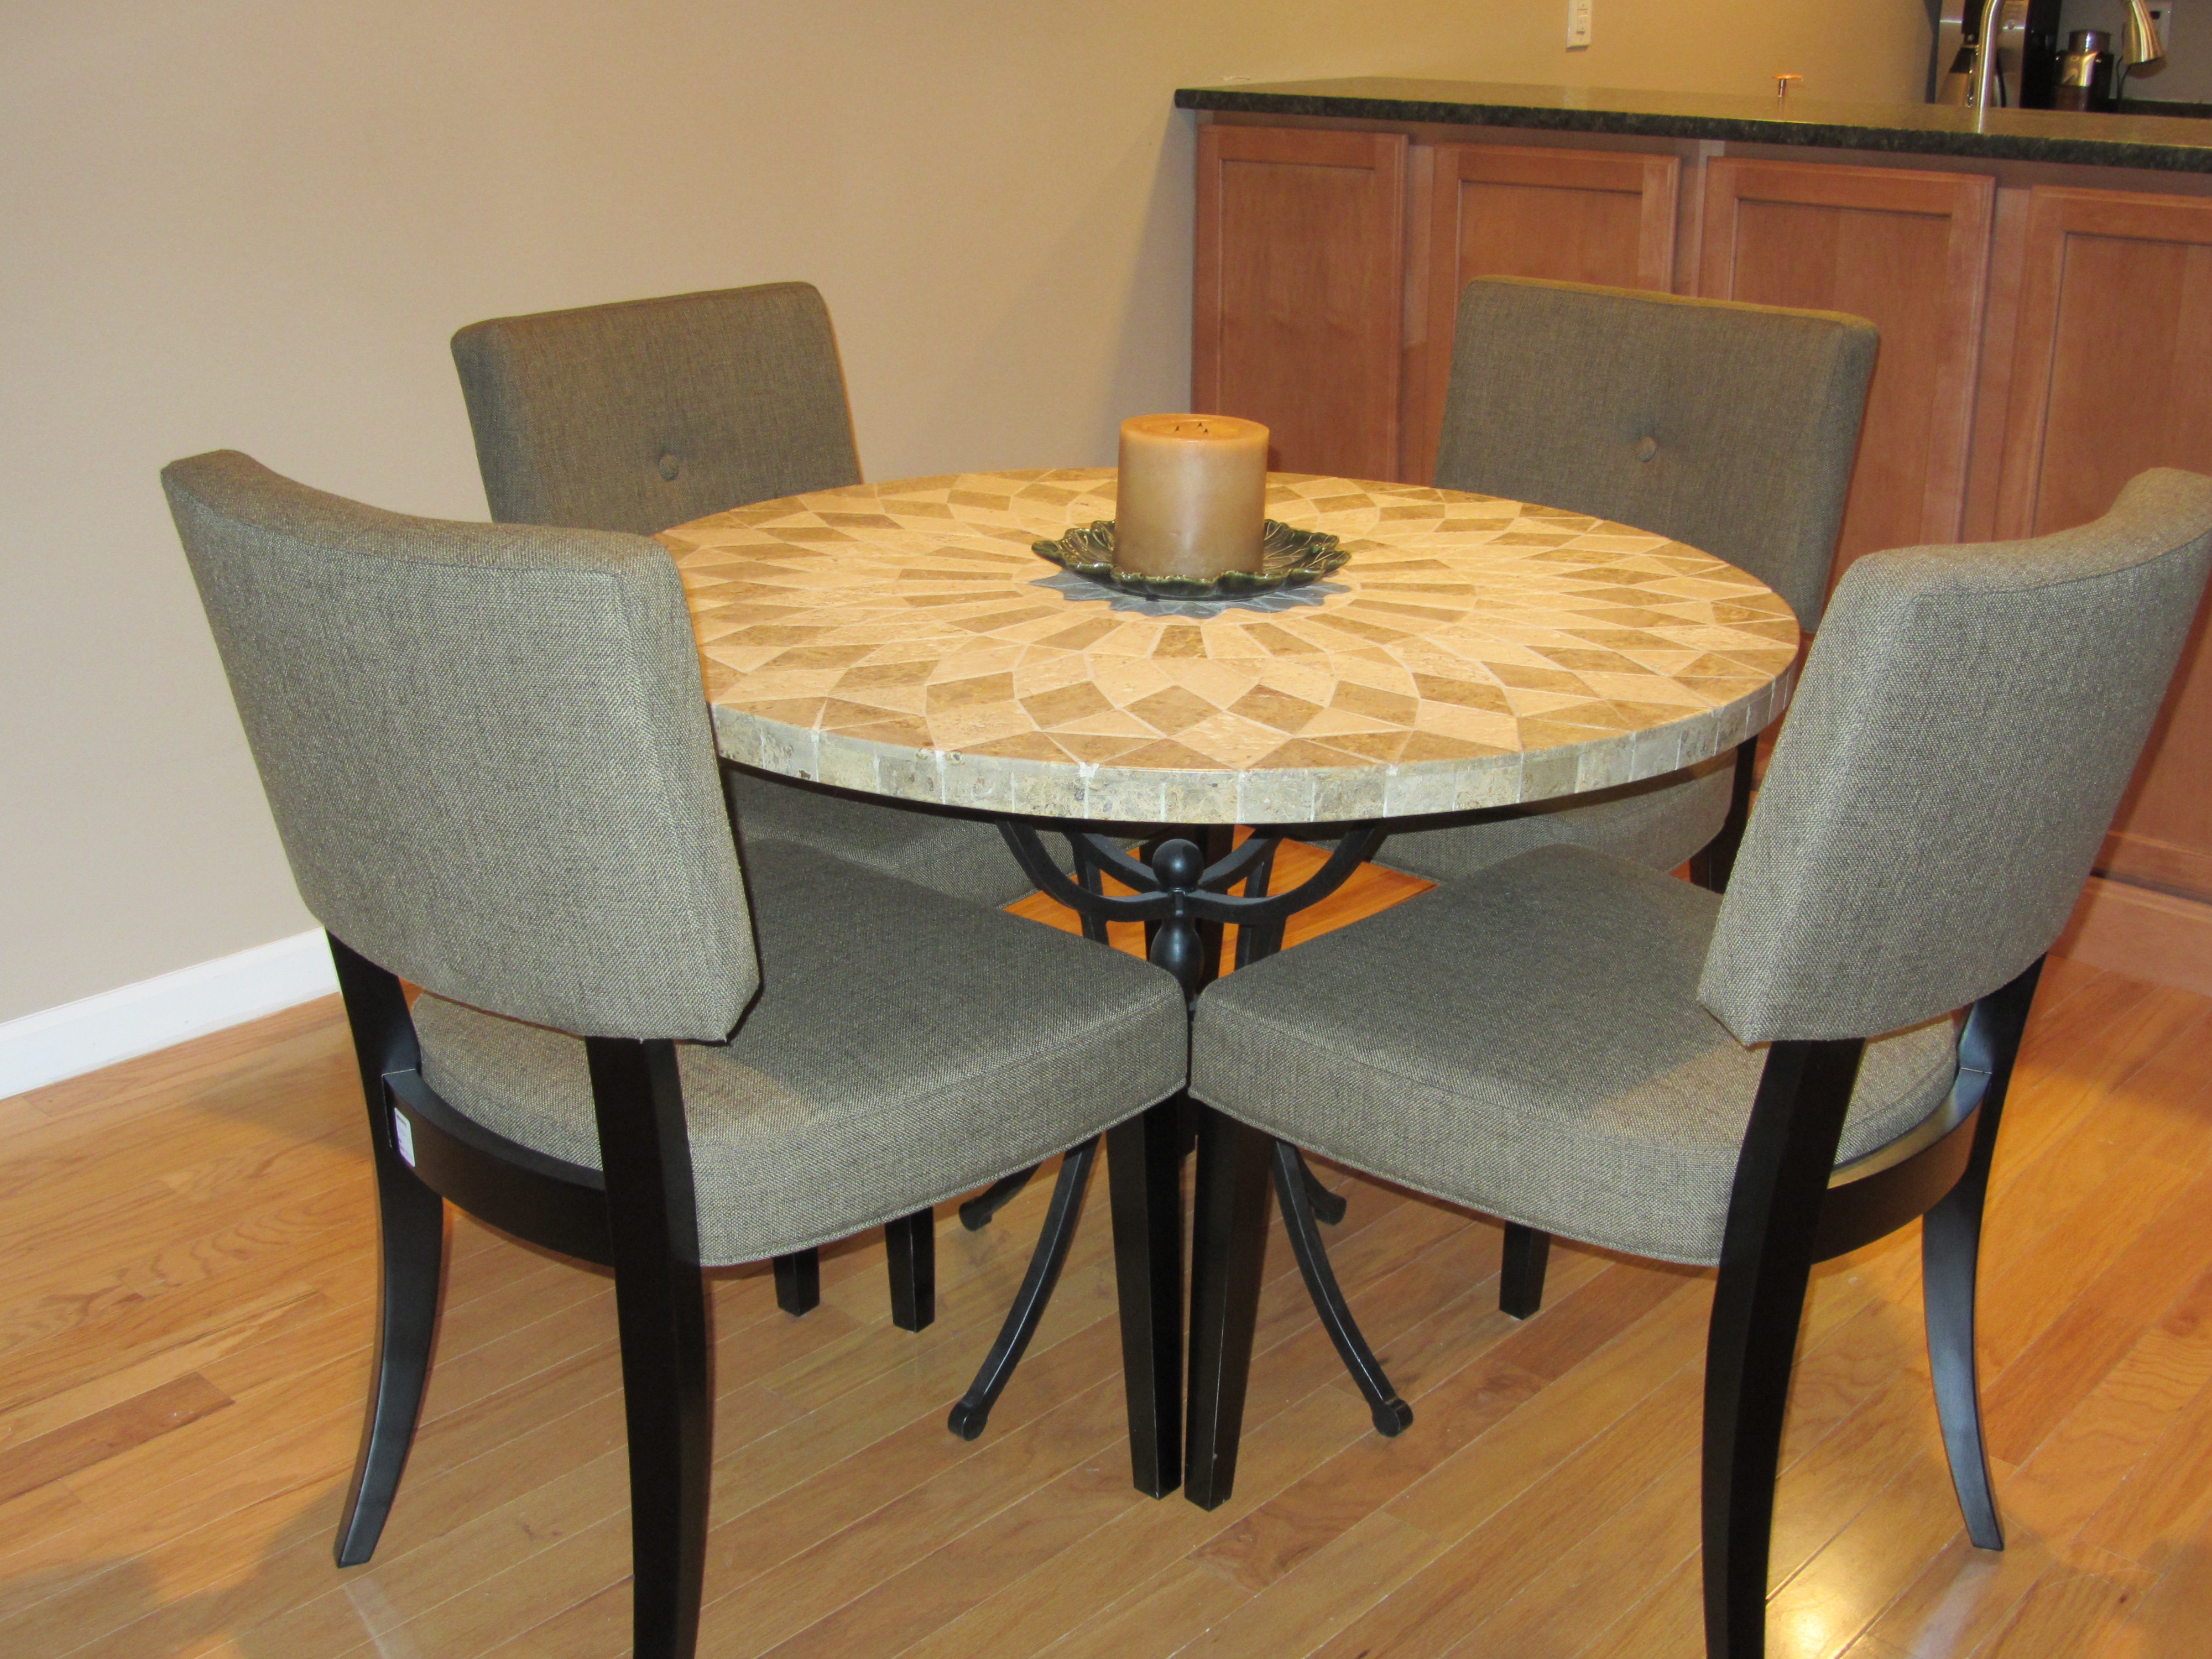 Dining Room Chairs From Tuesday Morning